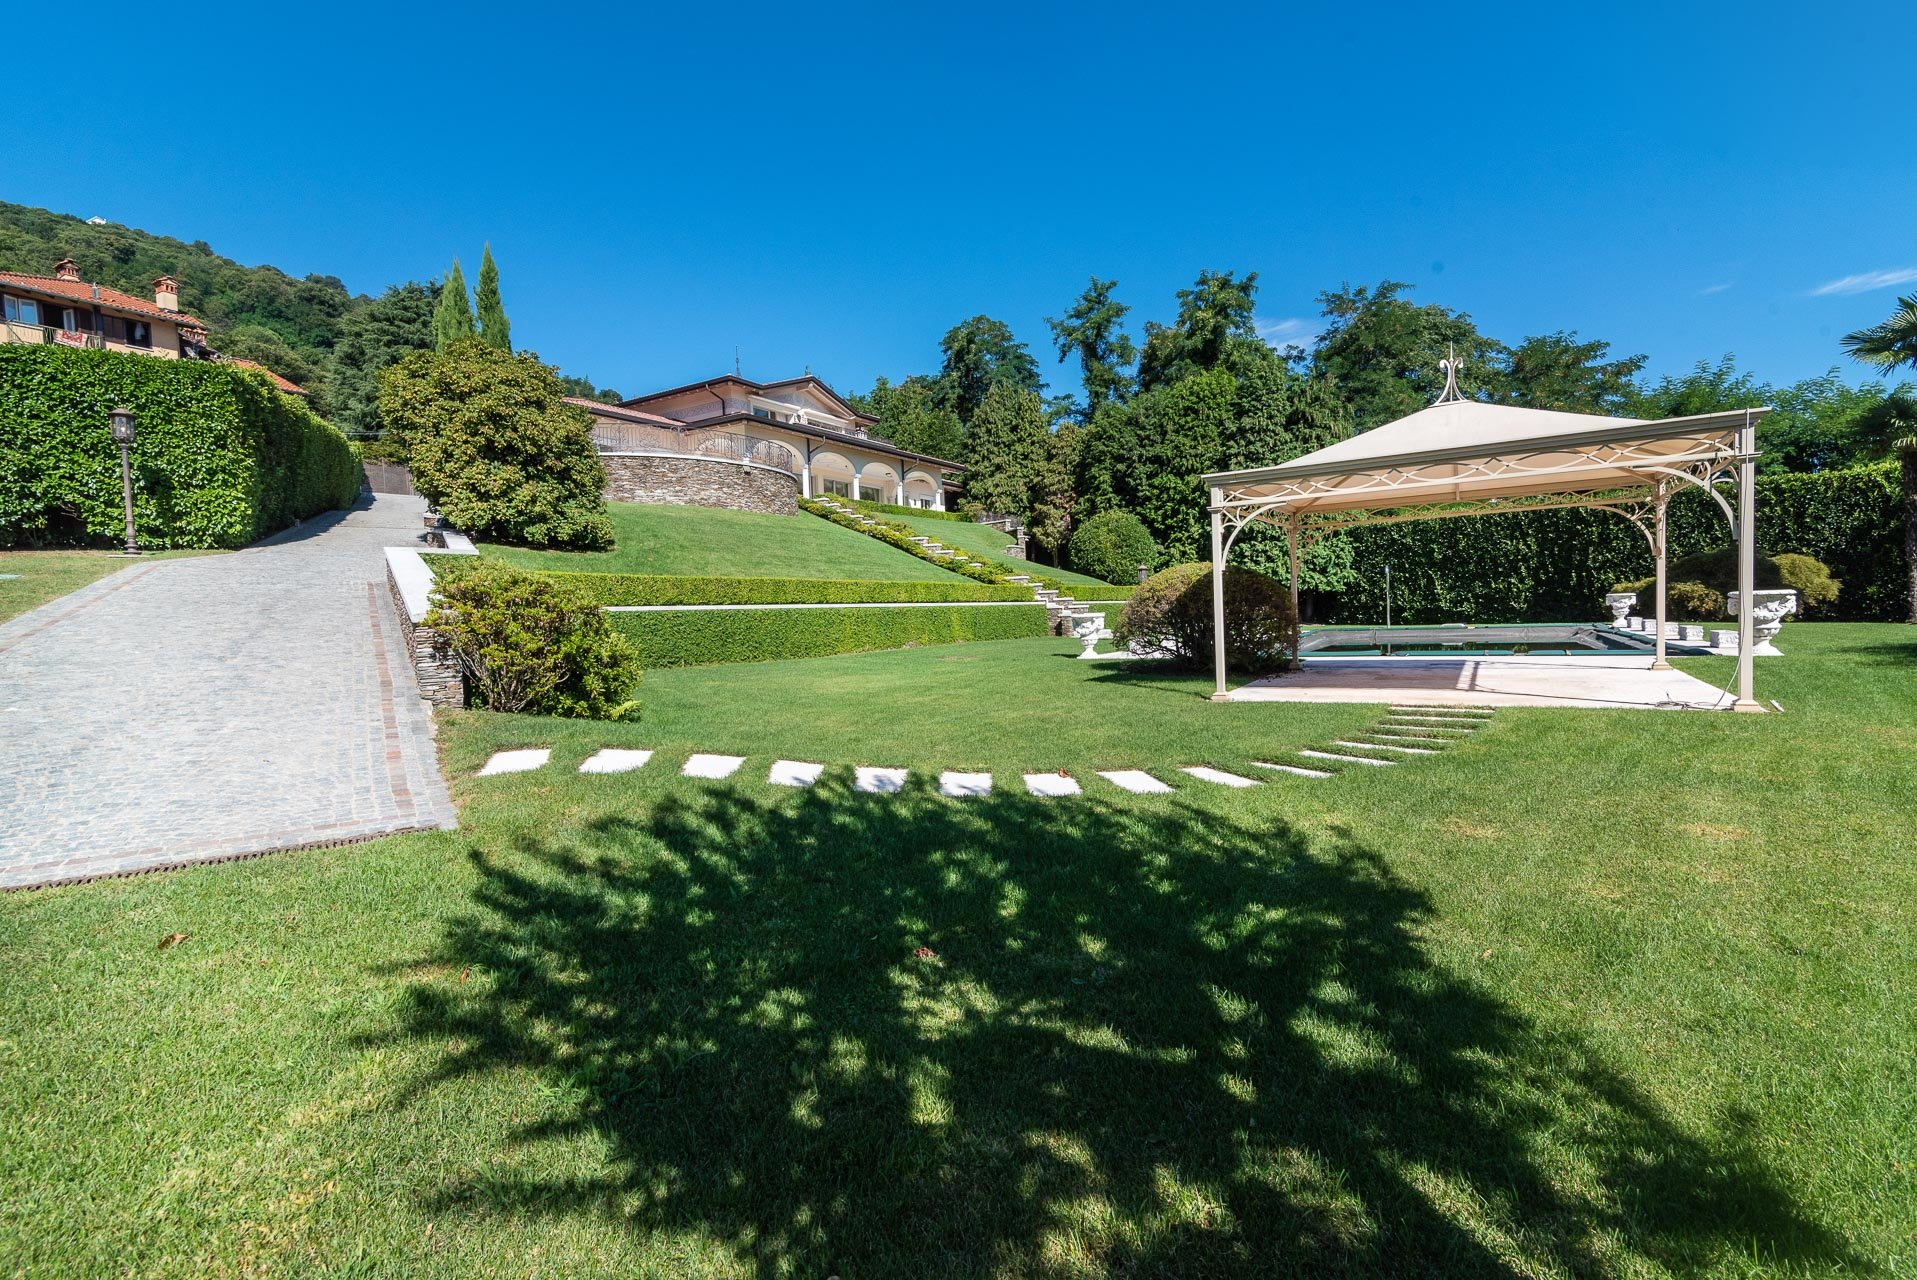 Newly built Villa for sale in Stresa, nearby the lakeside